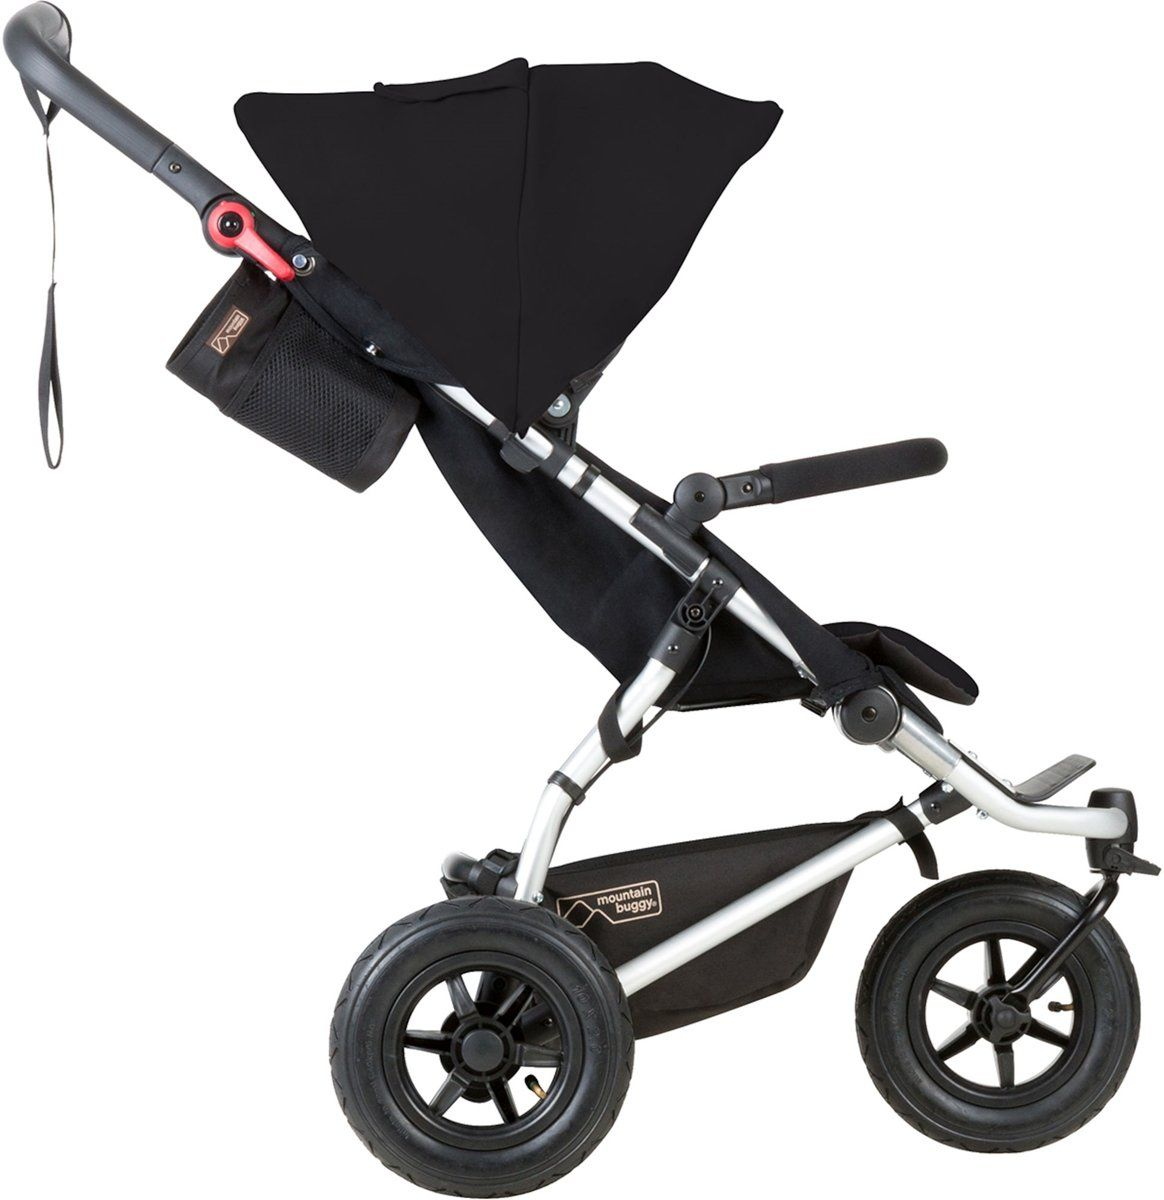 Maxi-cosi Auto-kindersitz Rubi Xp Poppy Red 2018 Mountain Buggy Plus Babywanne Für Mini Swift Schwarz